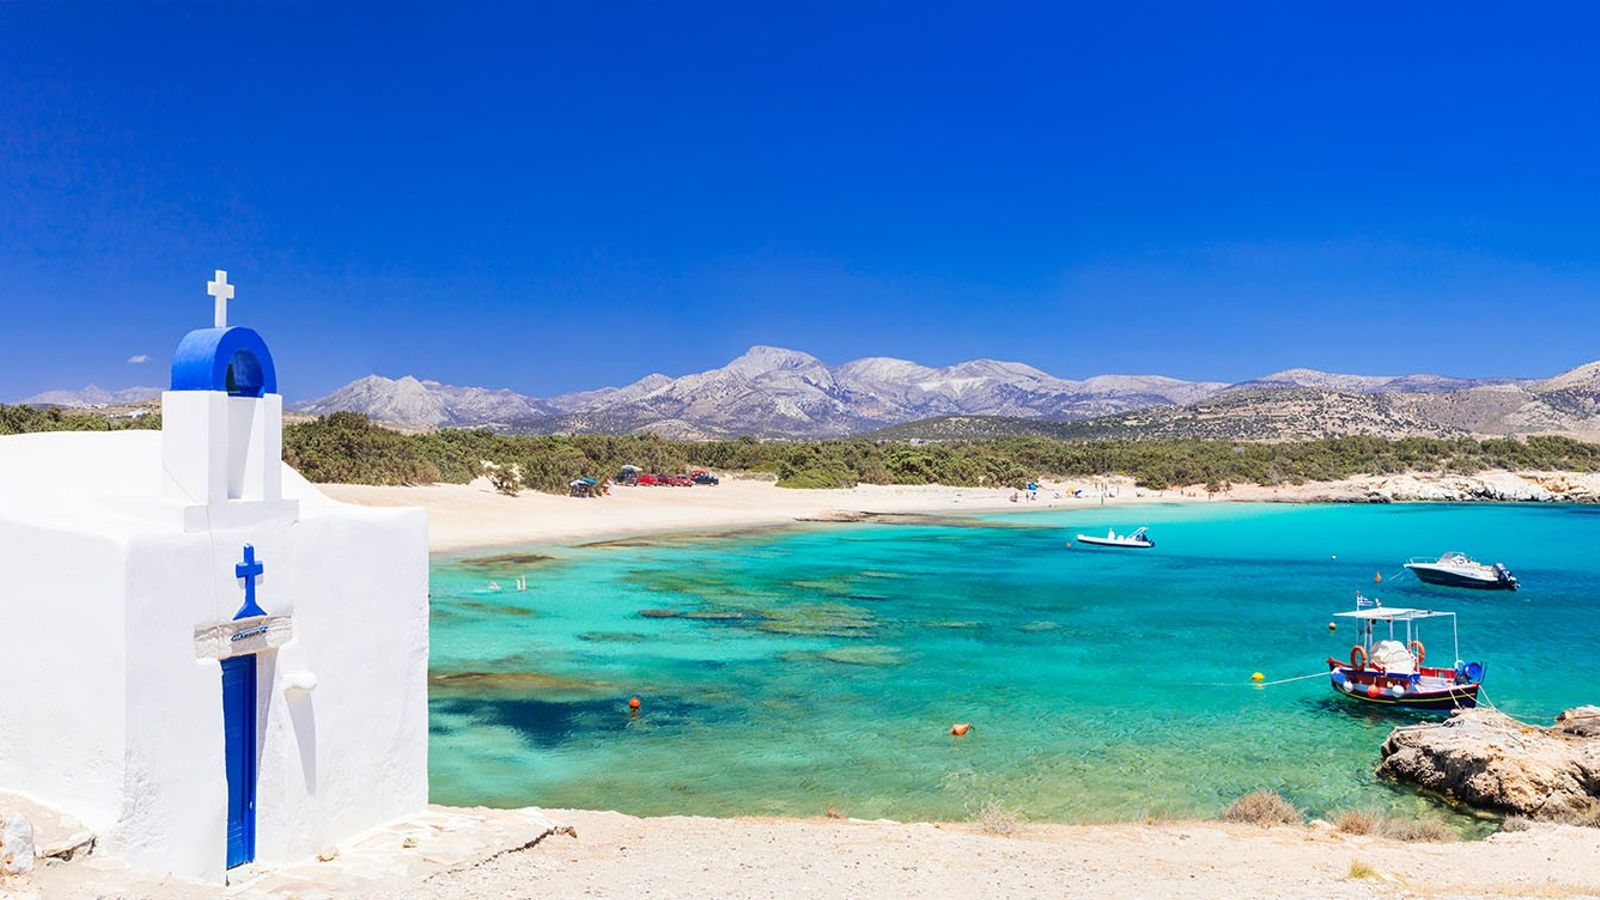 The largest of the Cyclades, Naxos, is home to secluded mountain villages, isolated beaches and ancient treasures.